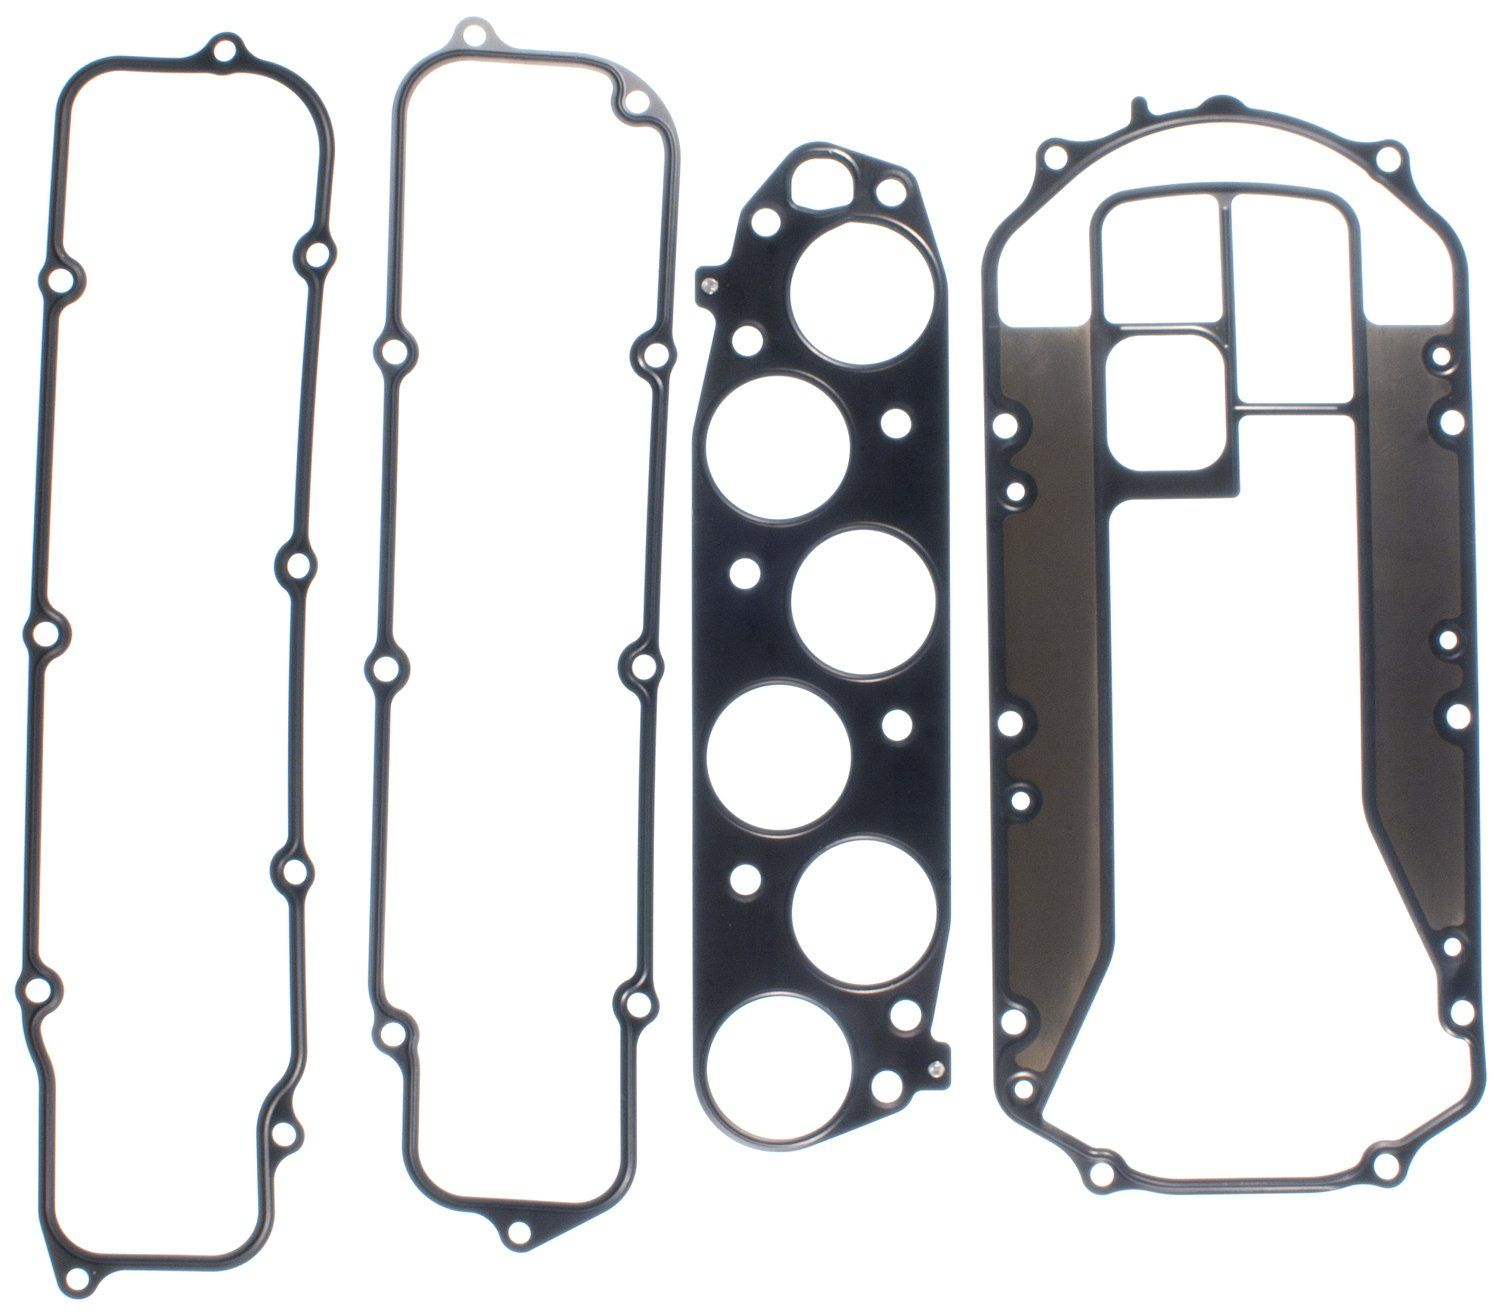 2002 Acura TL Fuel Injection Plenum Gasket 6 Cyl 3.2L (Victor Gaskets  MS19714) Rubber Coated Beaded Steel .